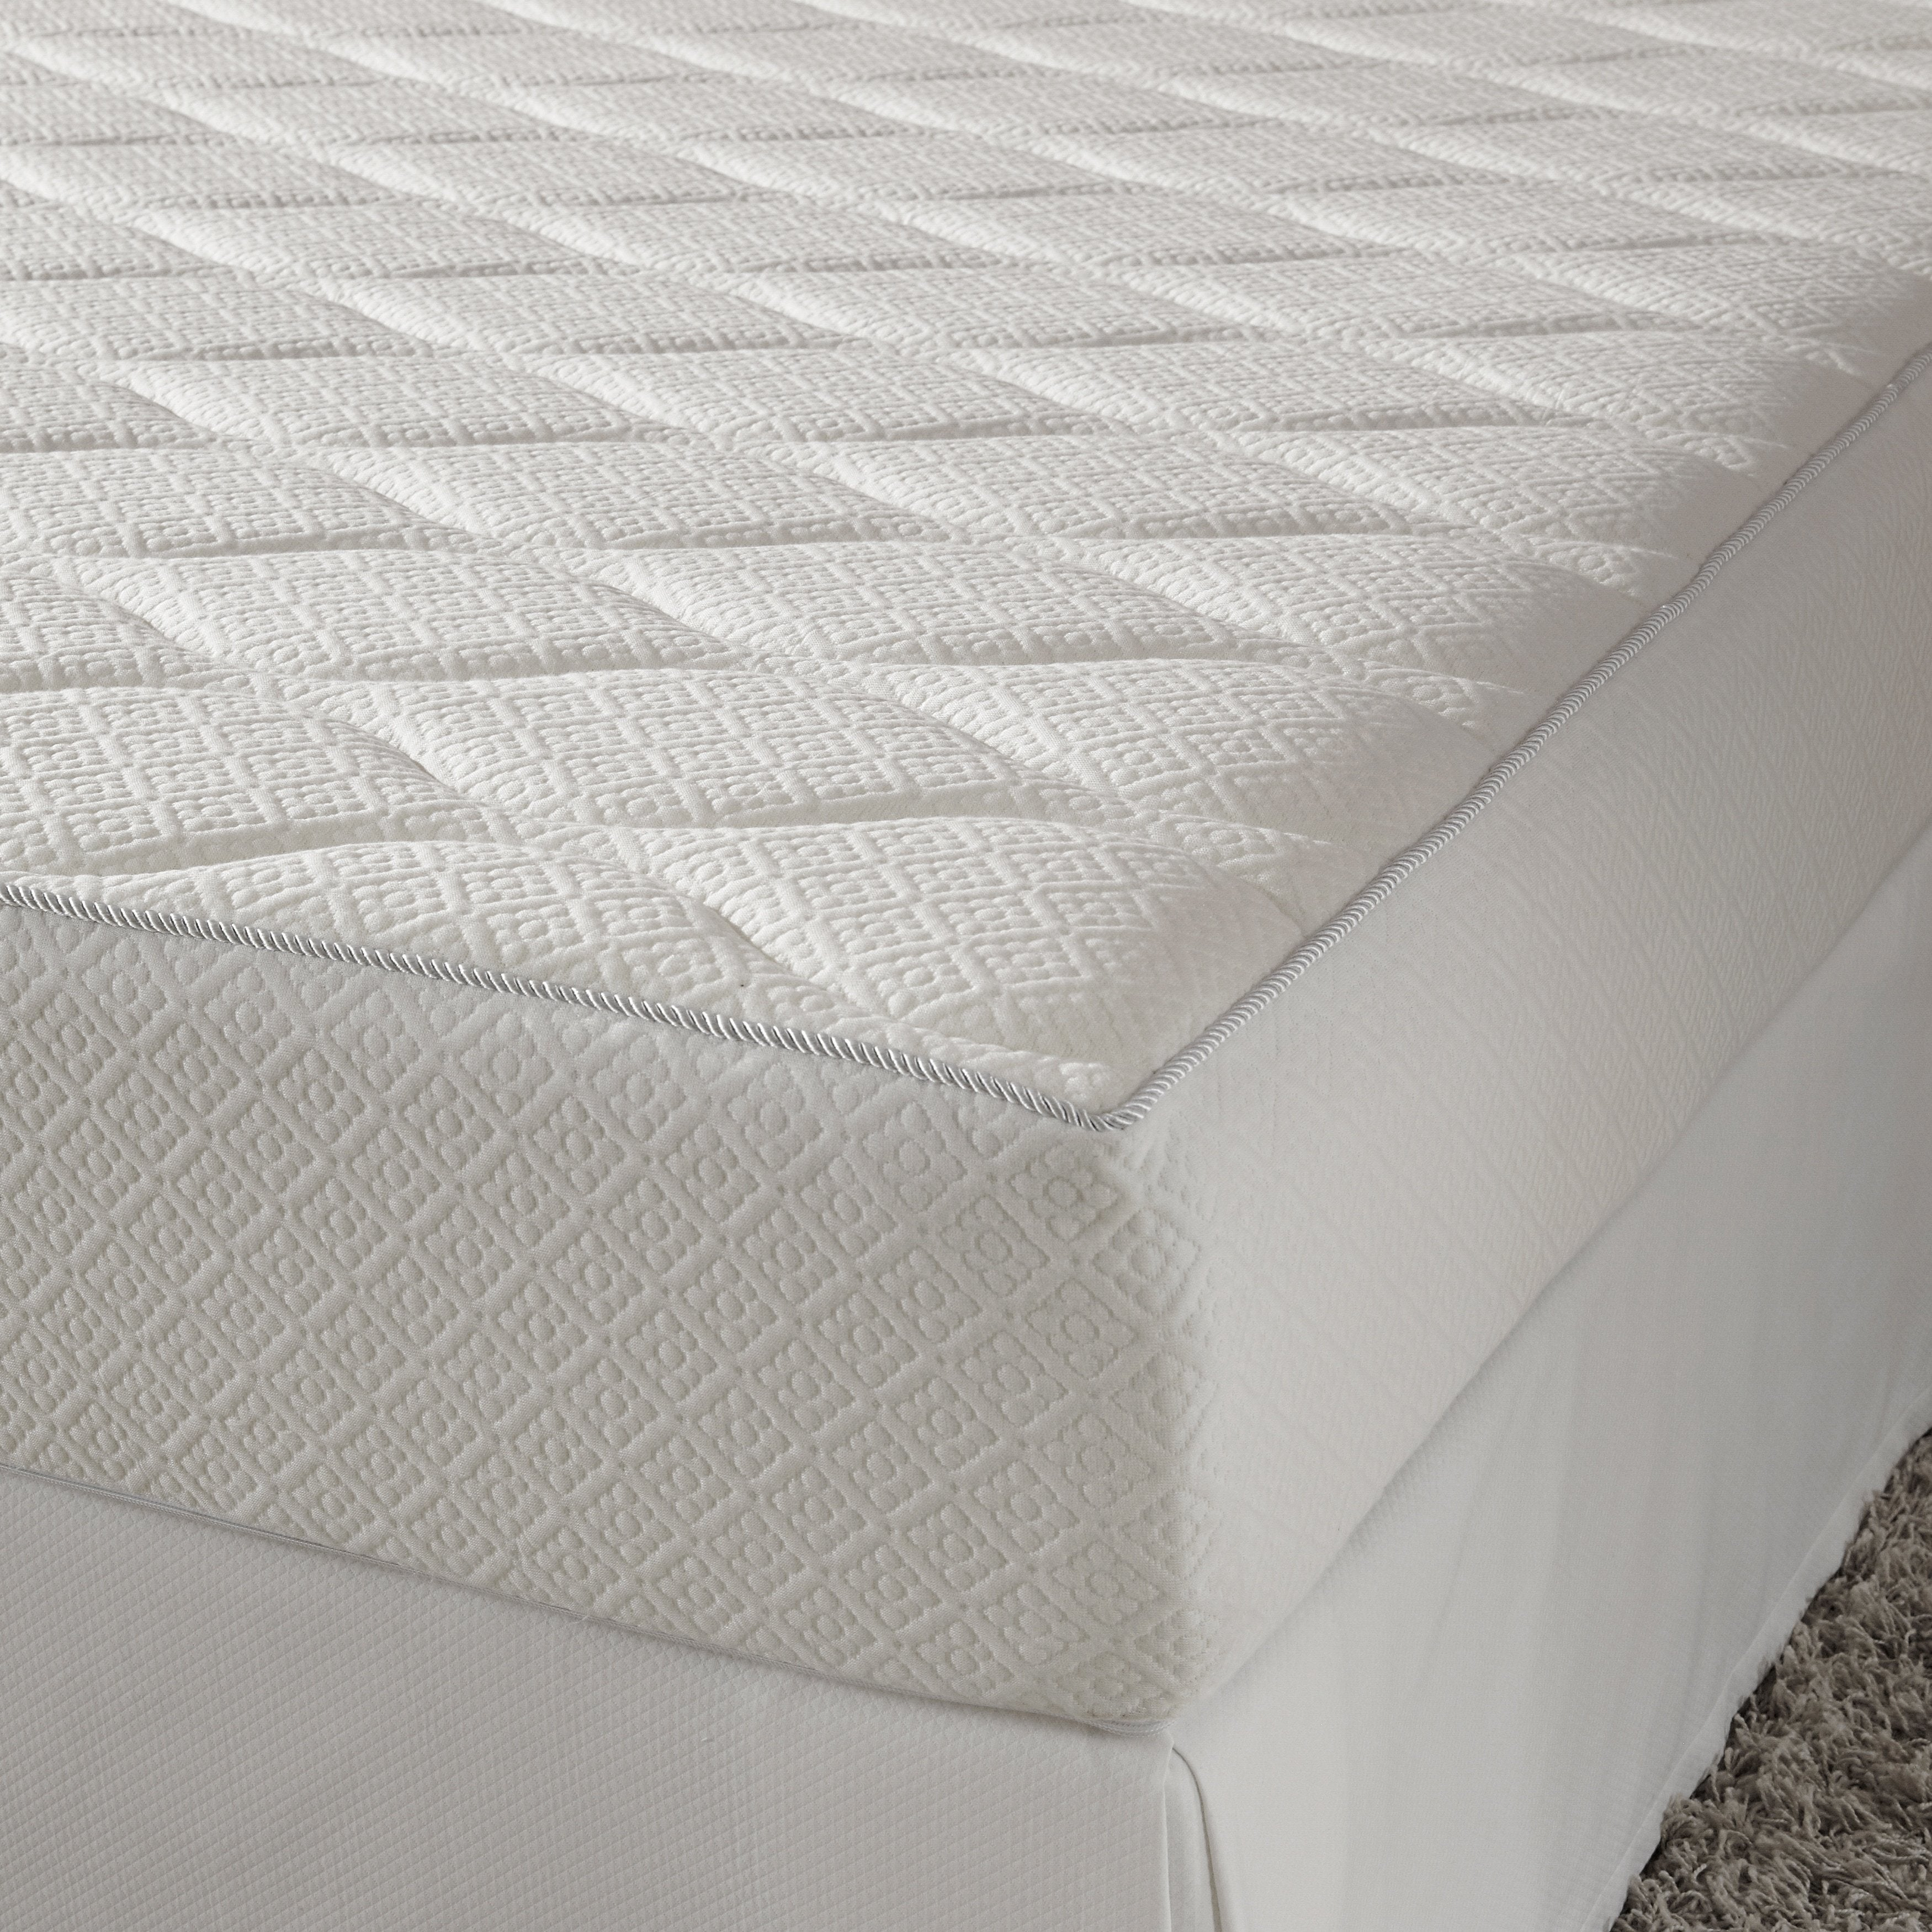 Queen 10 inch Memory Foam Mattress with Quilted Top Free